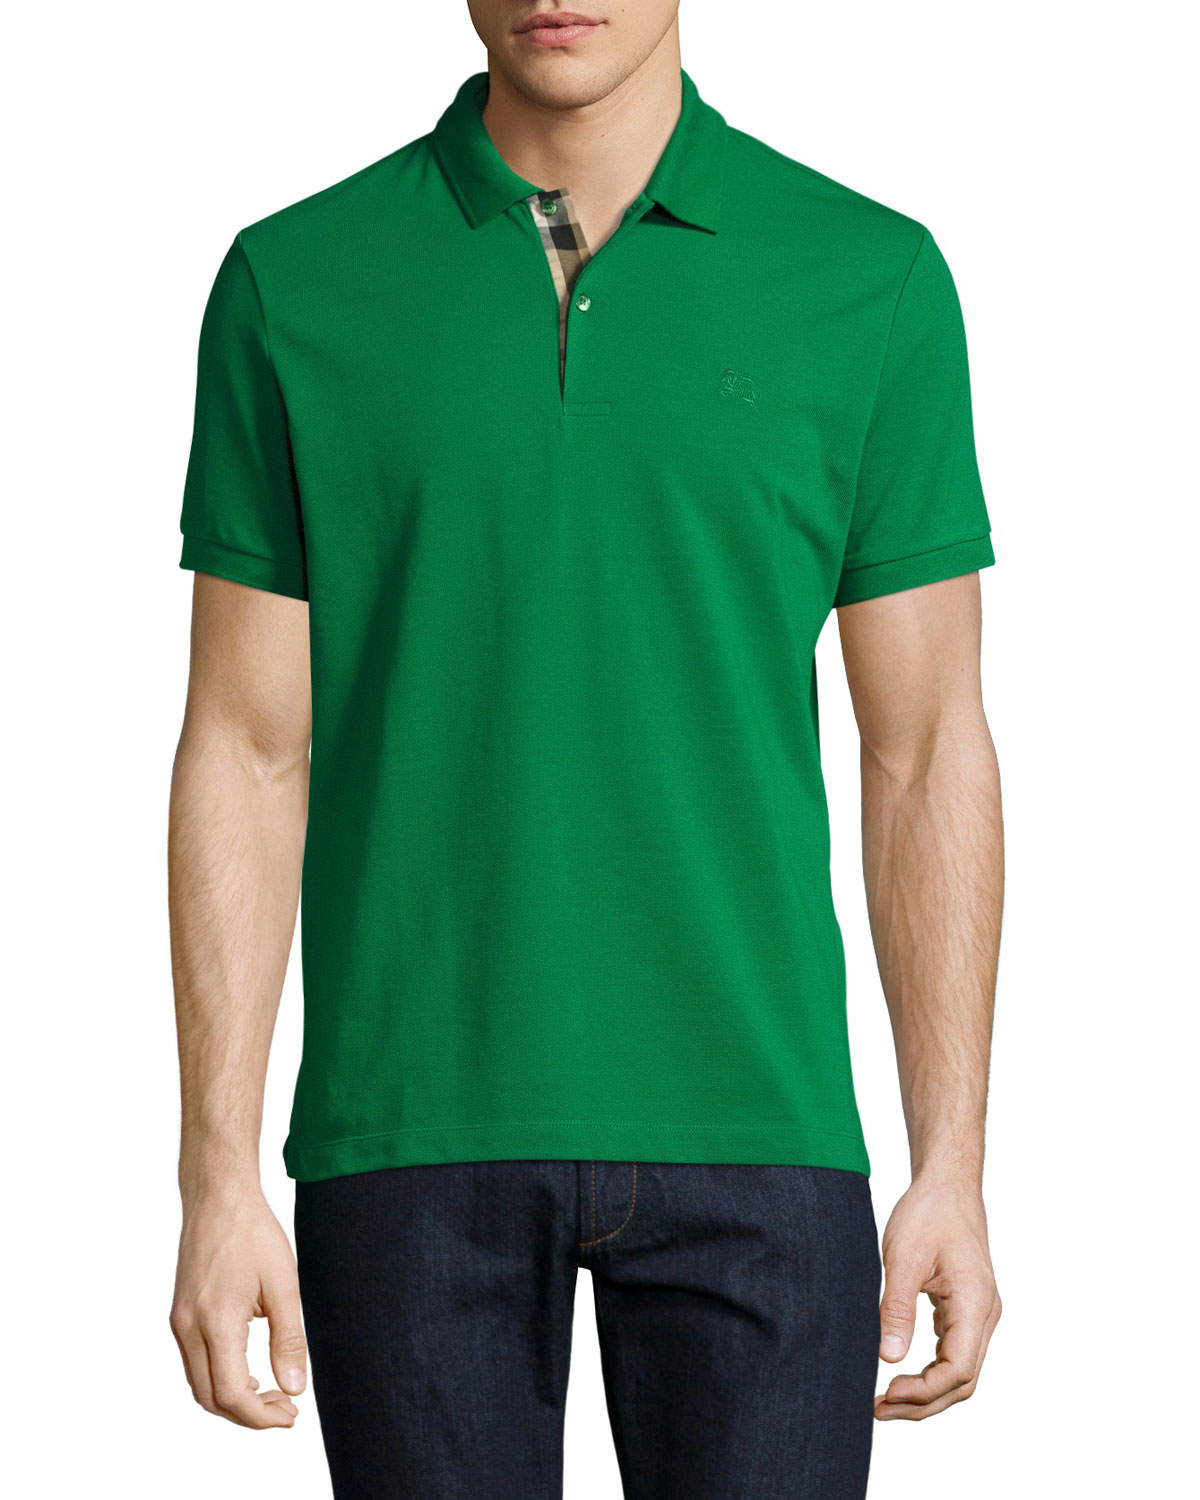 Short-Sleeve Oxford Polo Shirt, Green